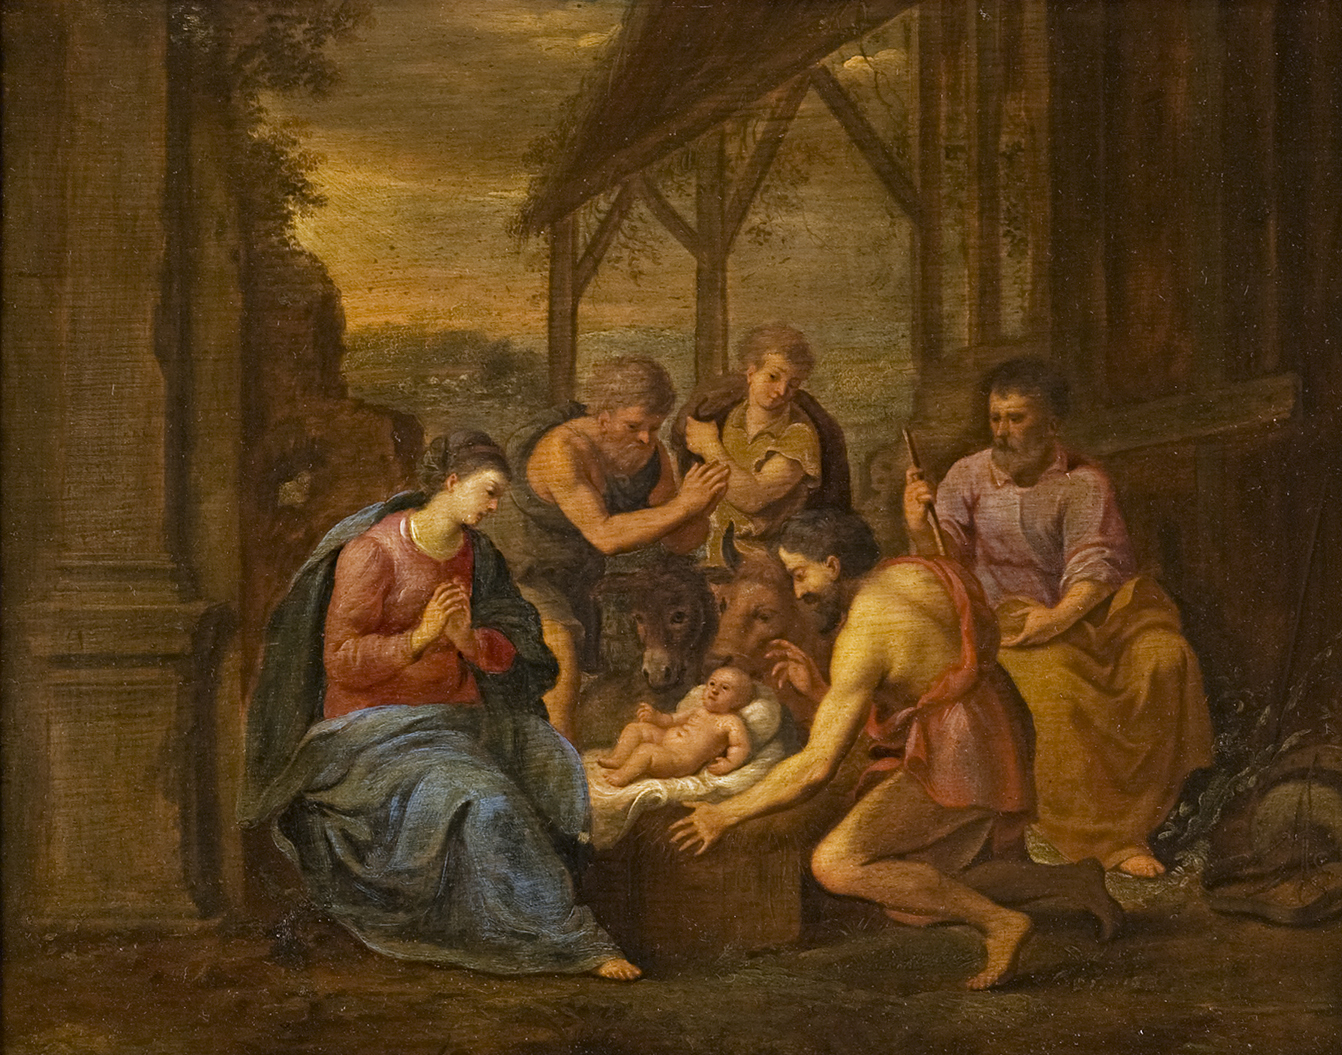 Circle of Jan van  Haensbergen (1642-1705). </br>'The Adoration of the Shepherds.'